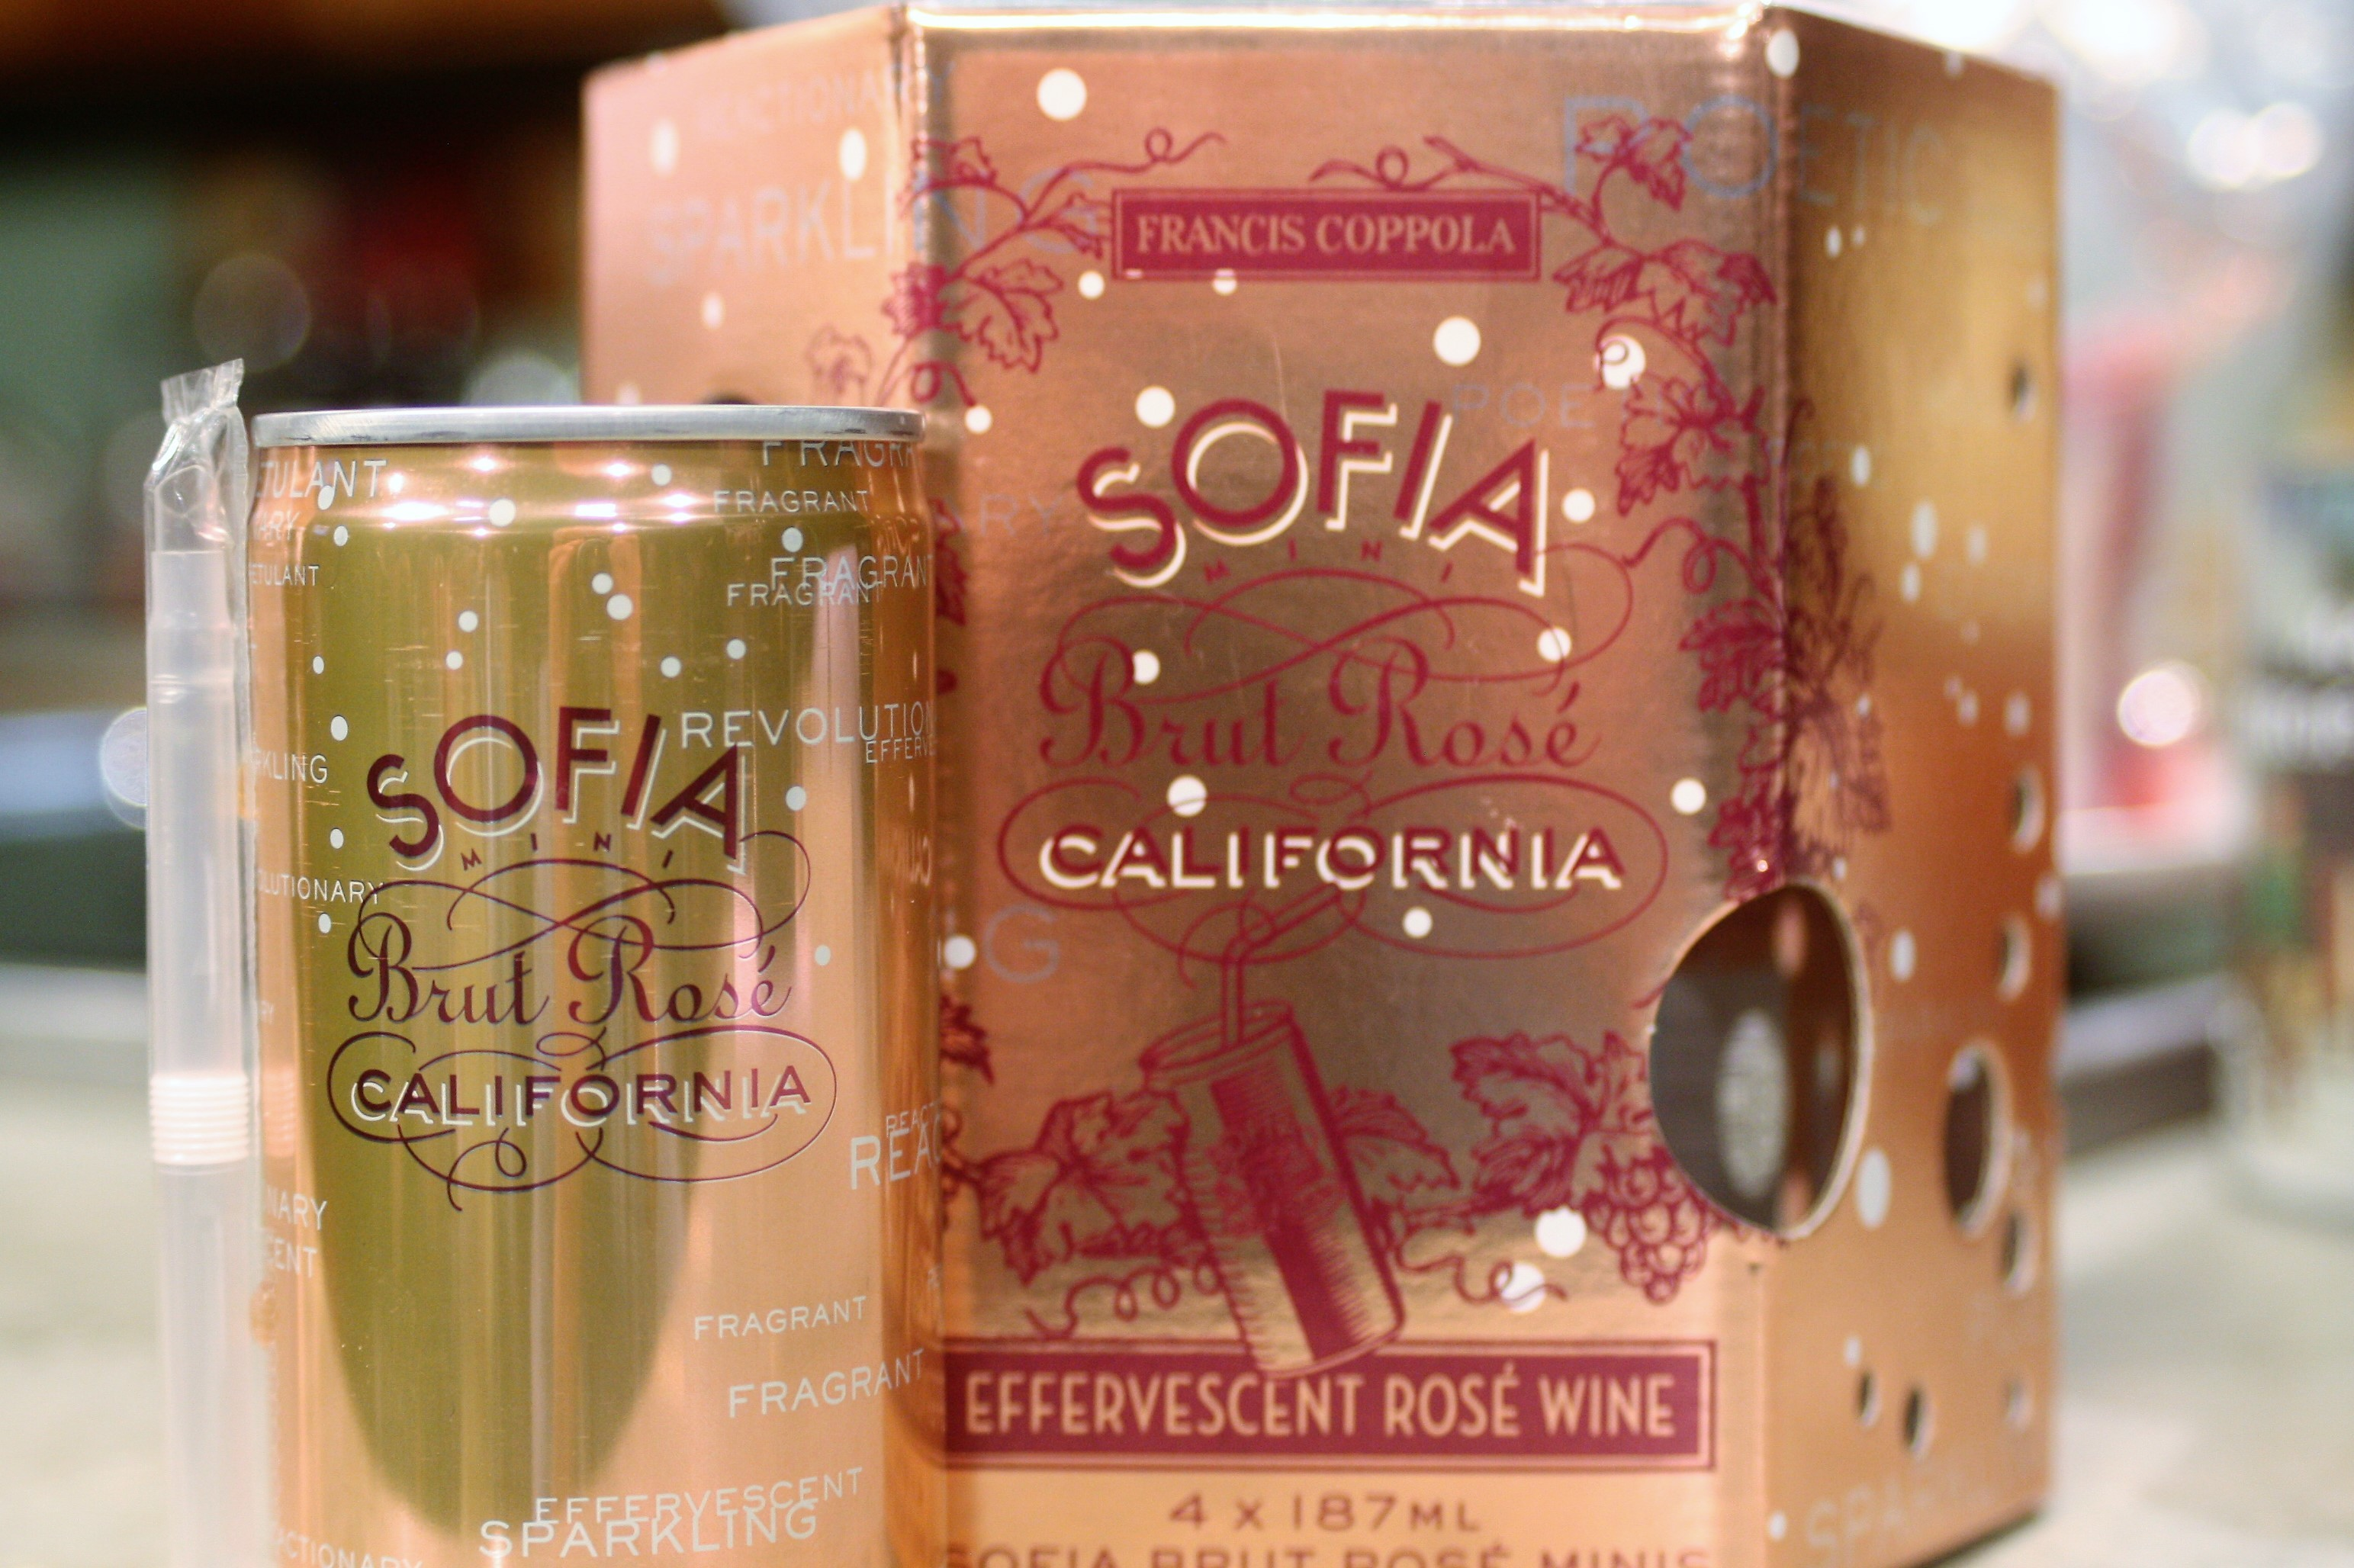 Coppola Sofia Brut Rose